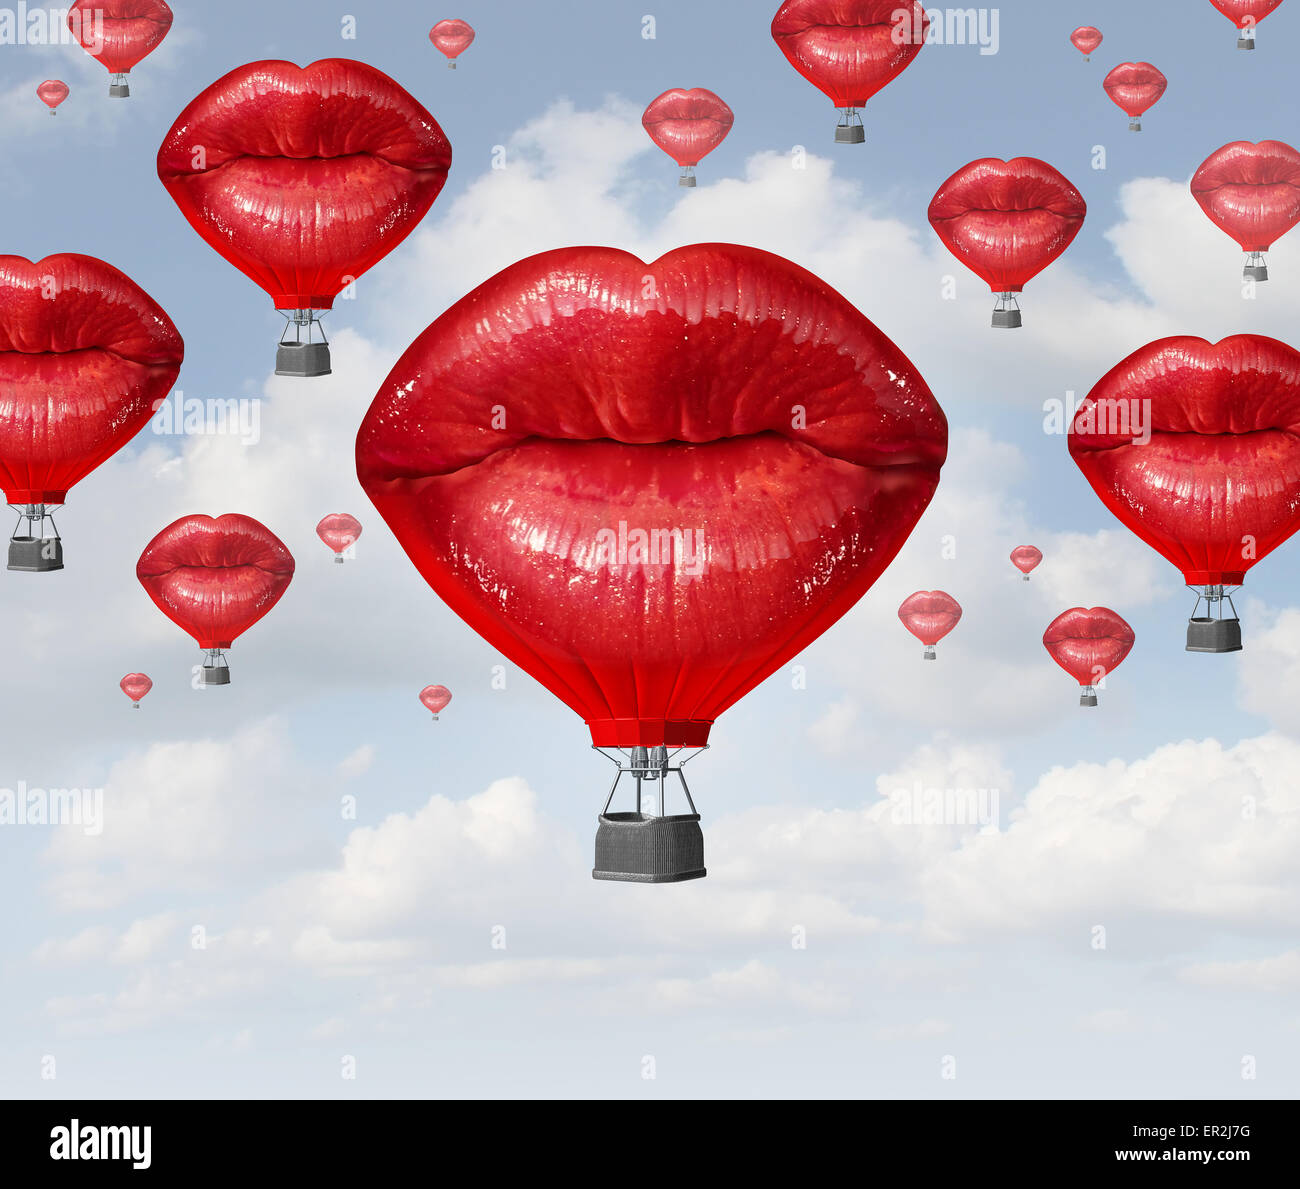 Love balloons as a hot air balloon made of human red lips soaring up to the blue sky as a surreal dreamy romantic - Stock Image